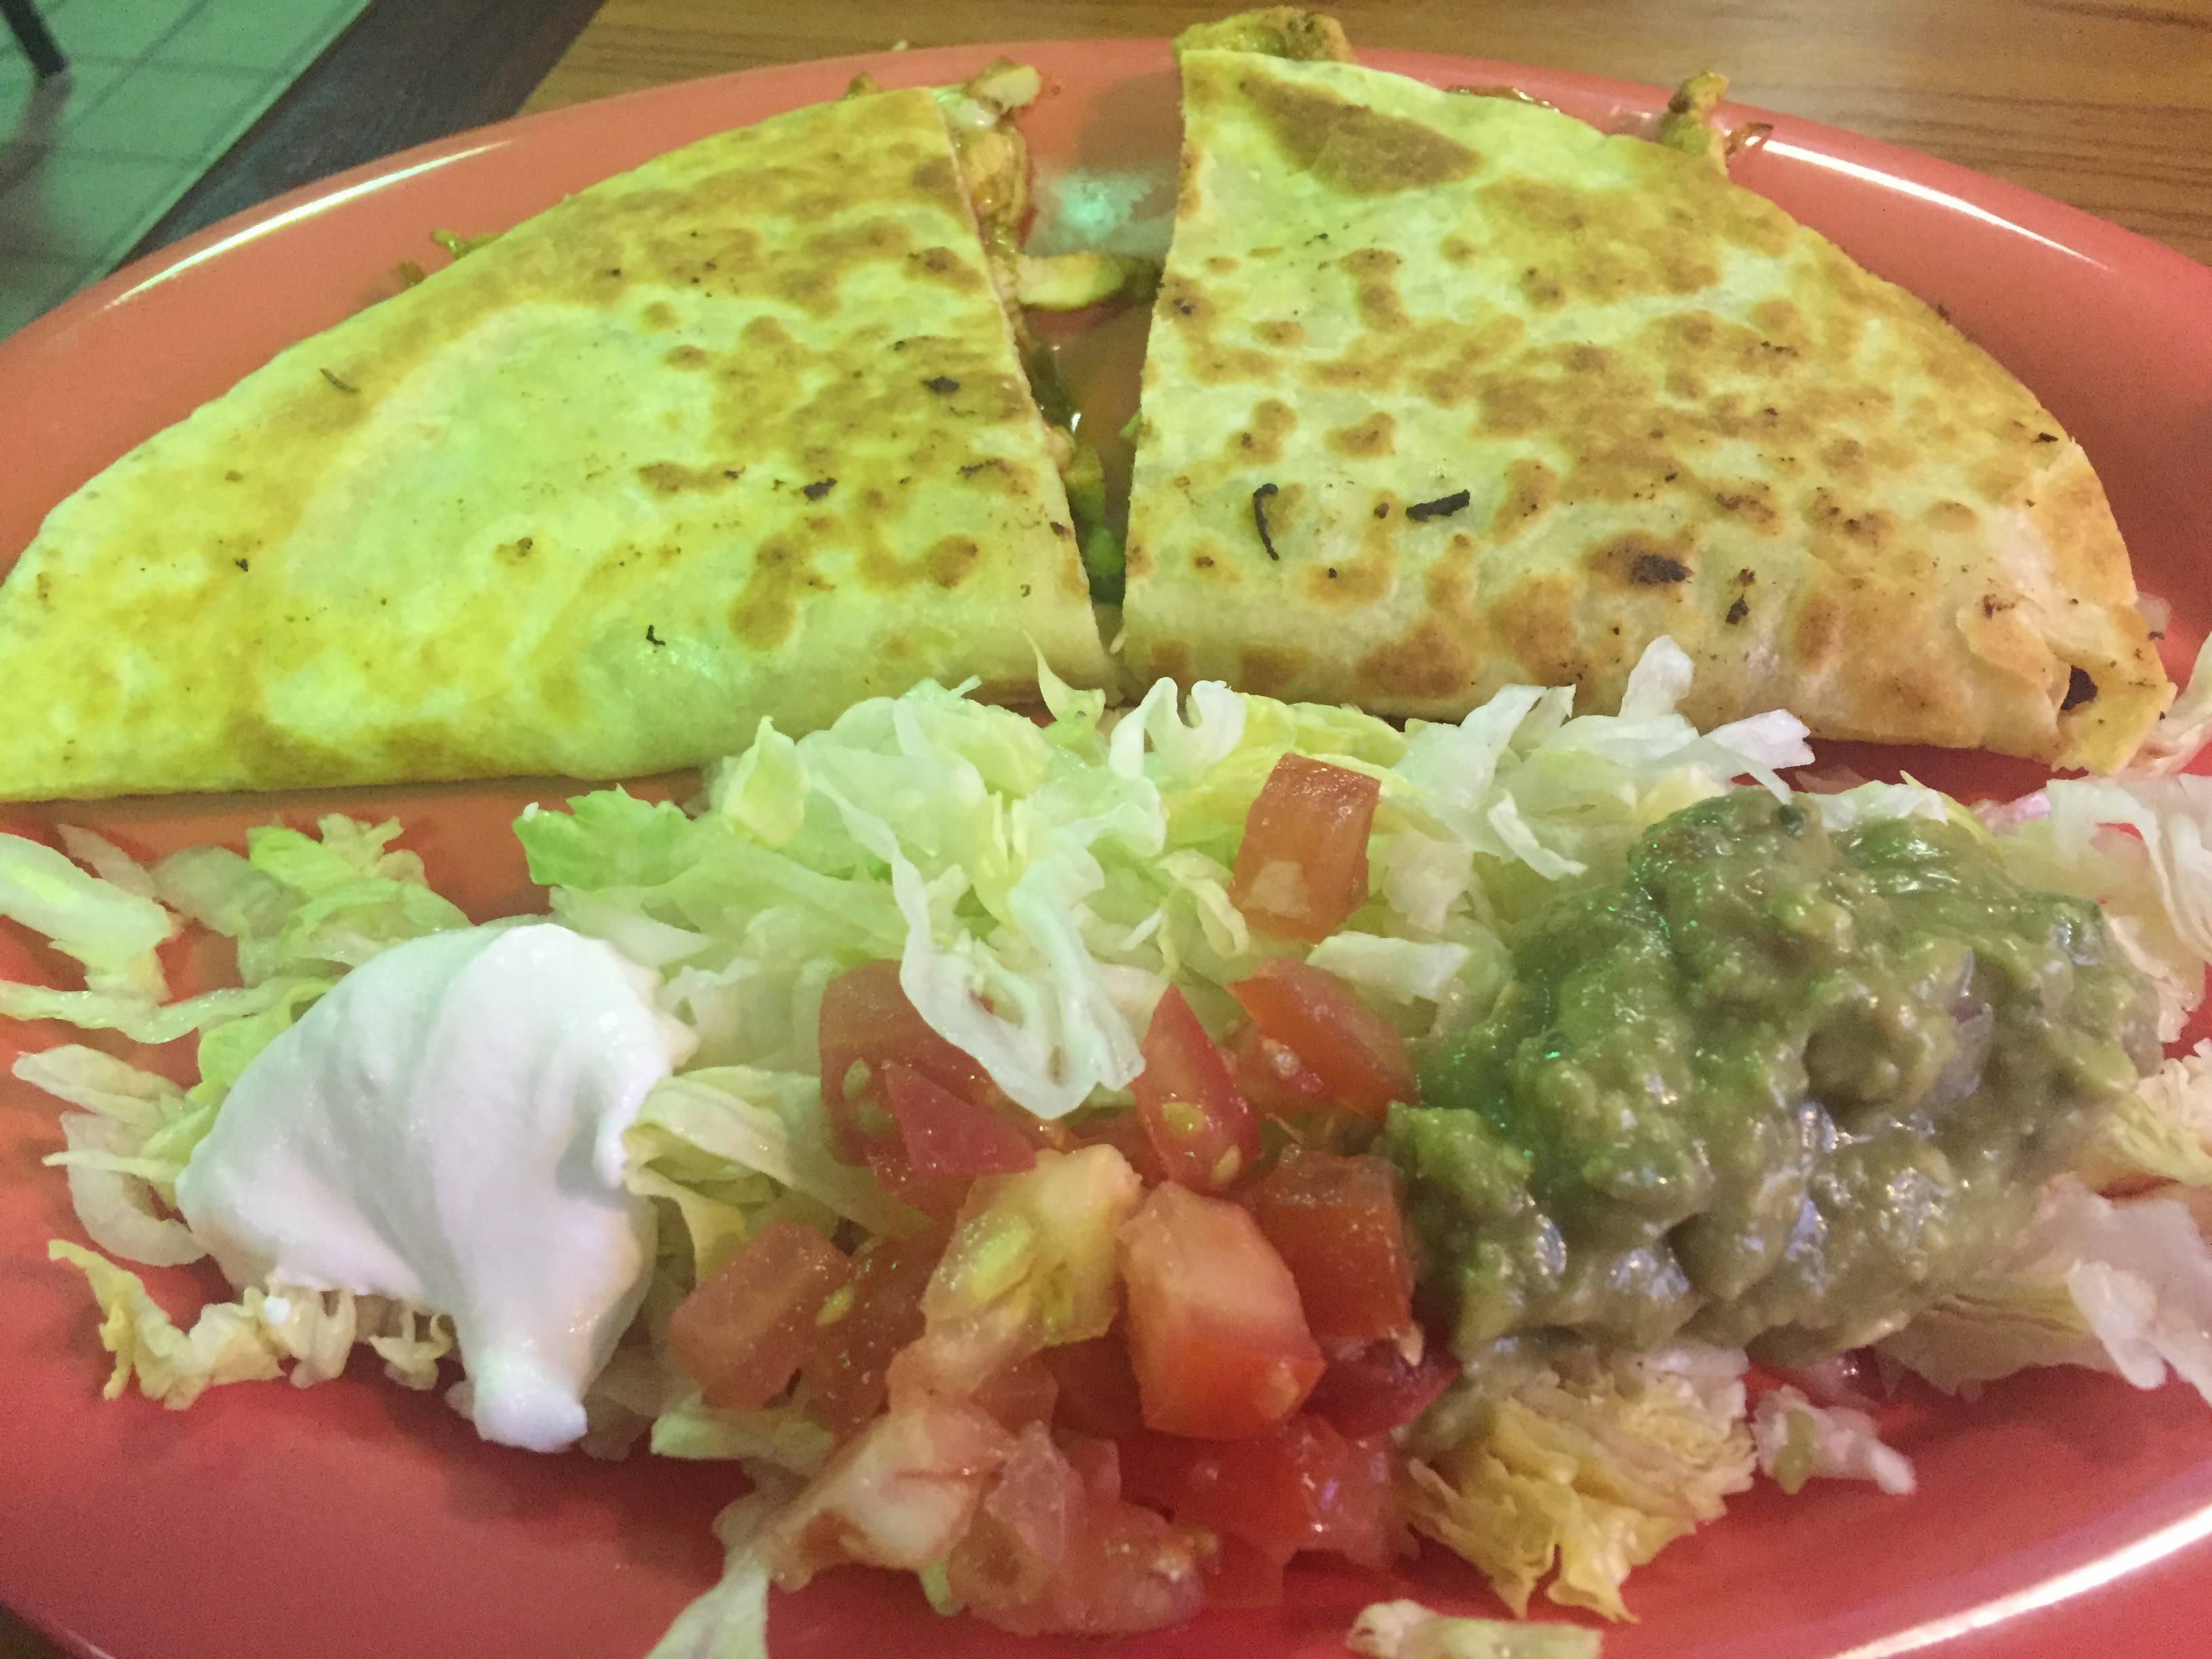 Country Burrito Fresh Mex Adds Variety To Hardin Valley Grub Scout